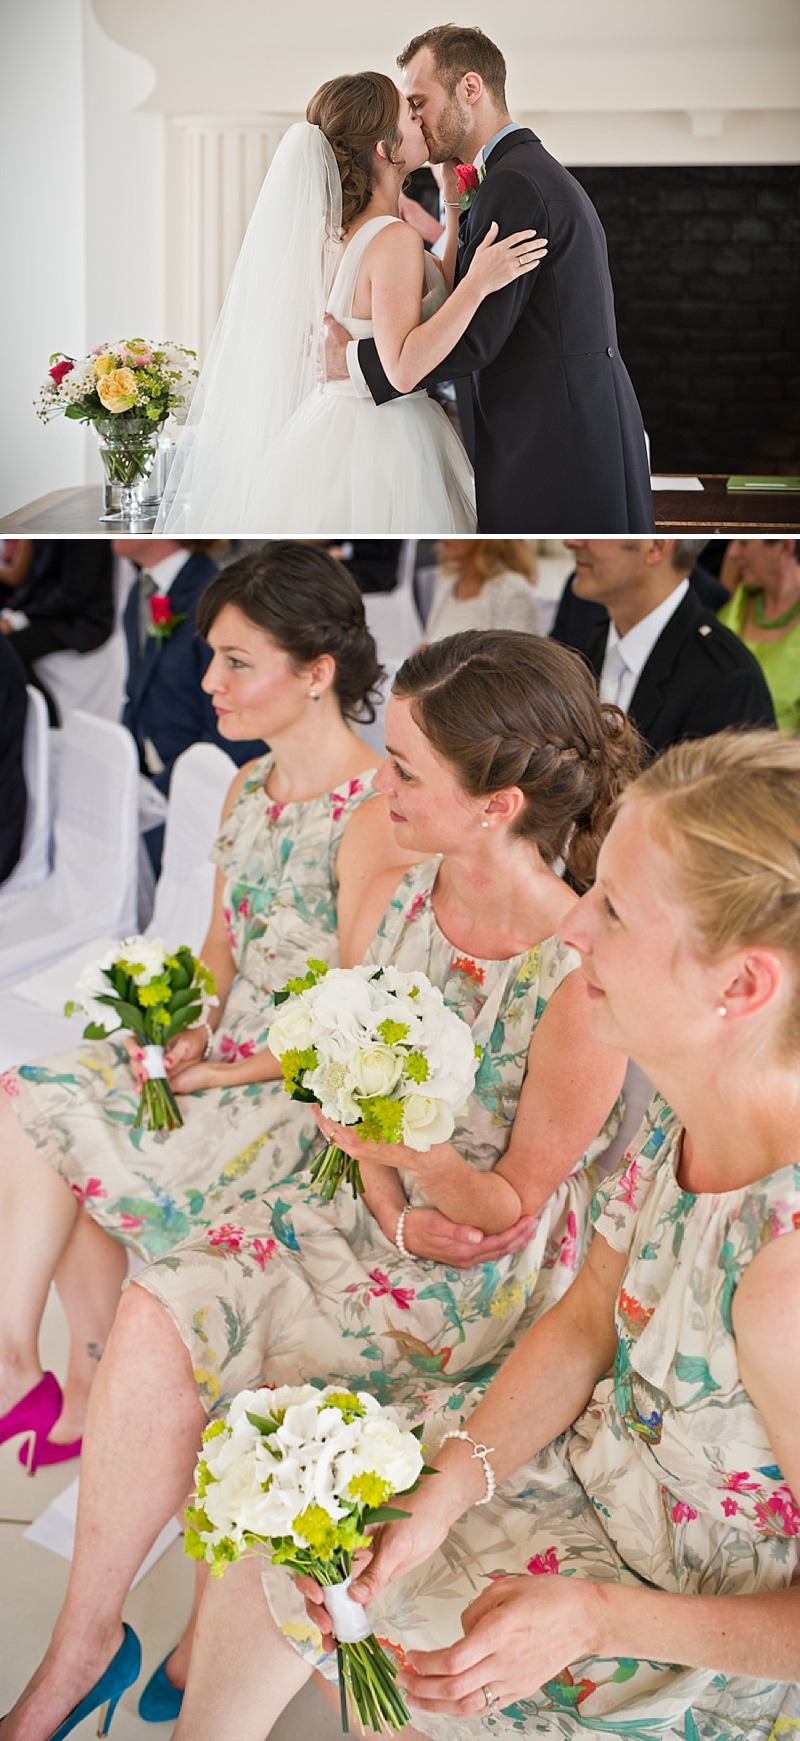 Ted baker bridesmaids dresses archives rock my wedding uk an elegant contemporary wedding at northbrook park farnham with bride in ellis bridal gown and blue ombrellifo Image collections